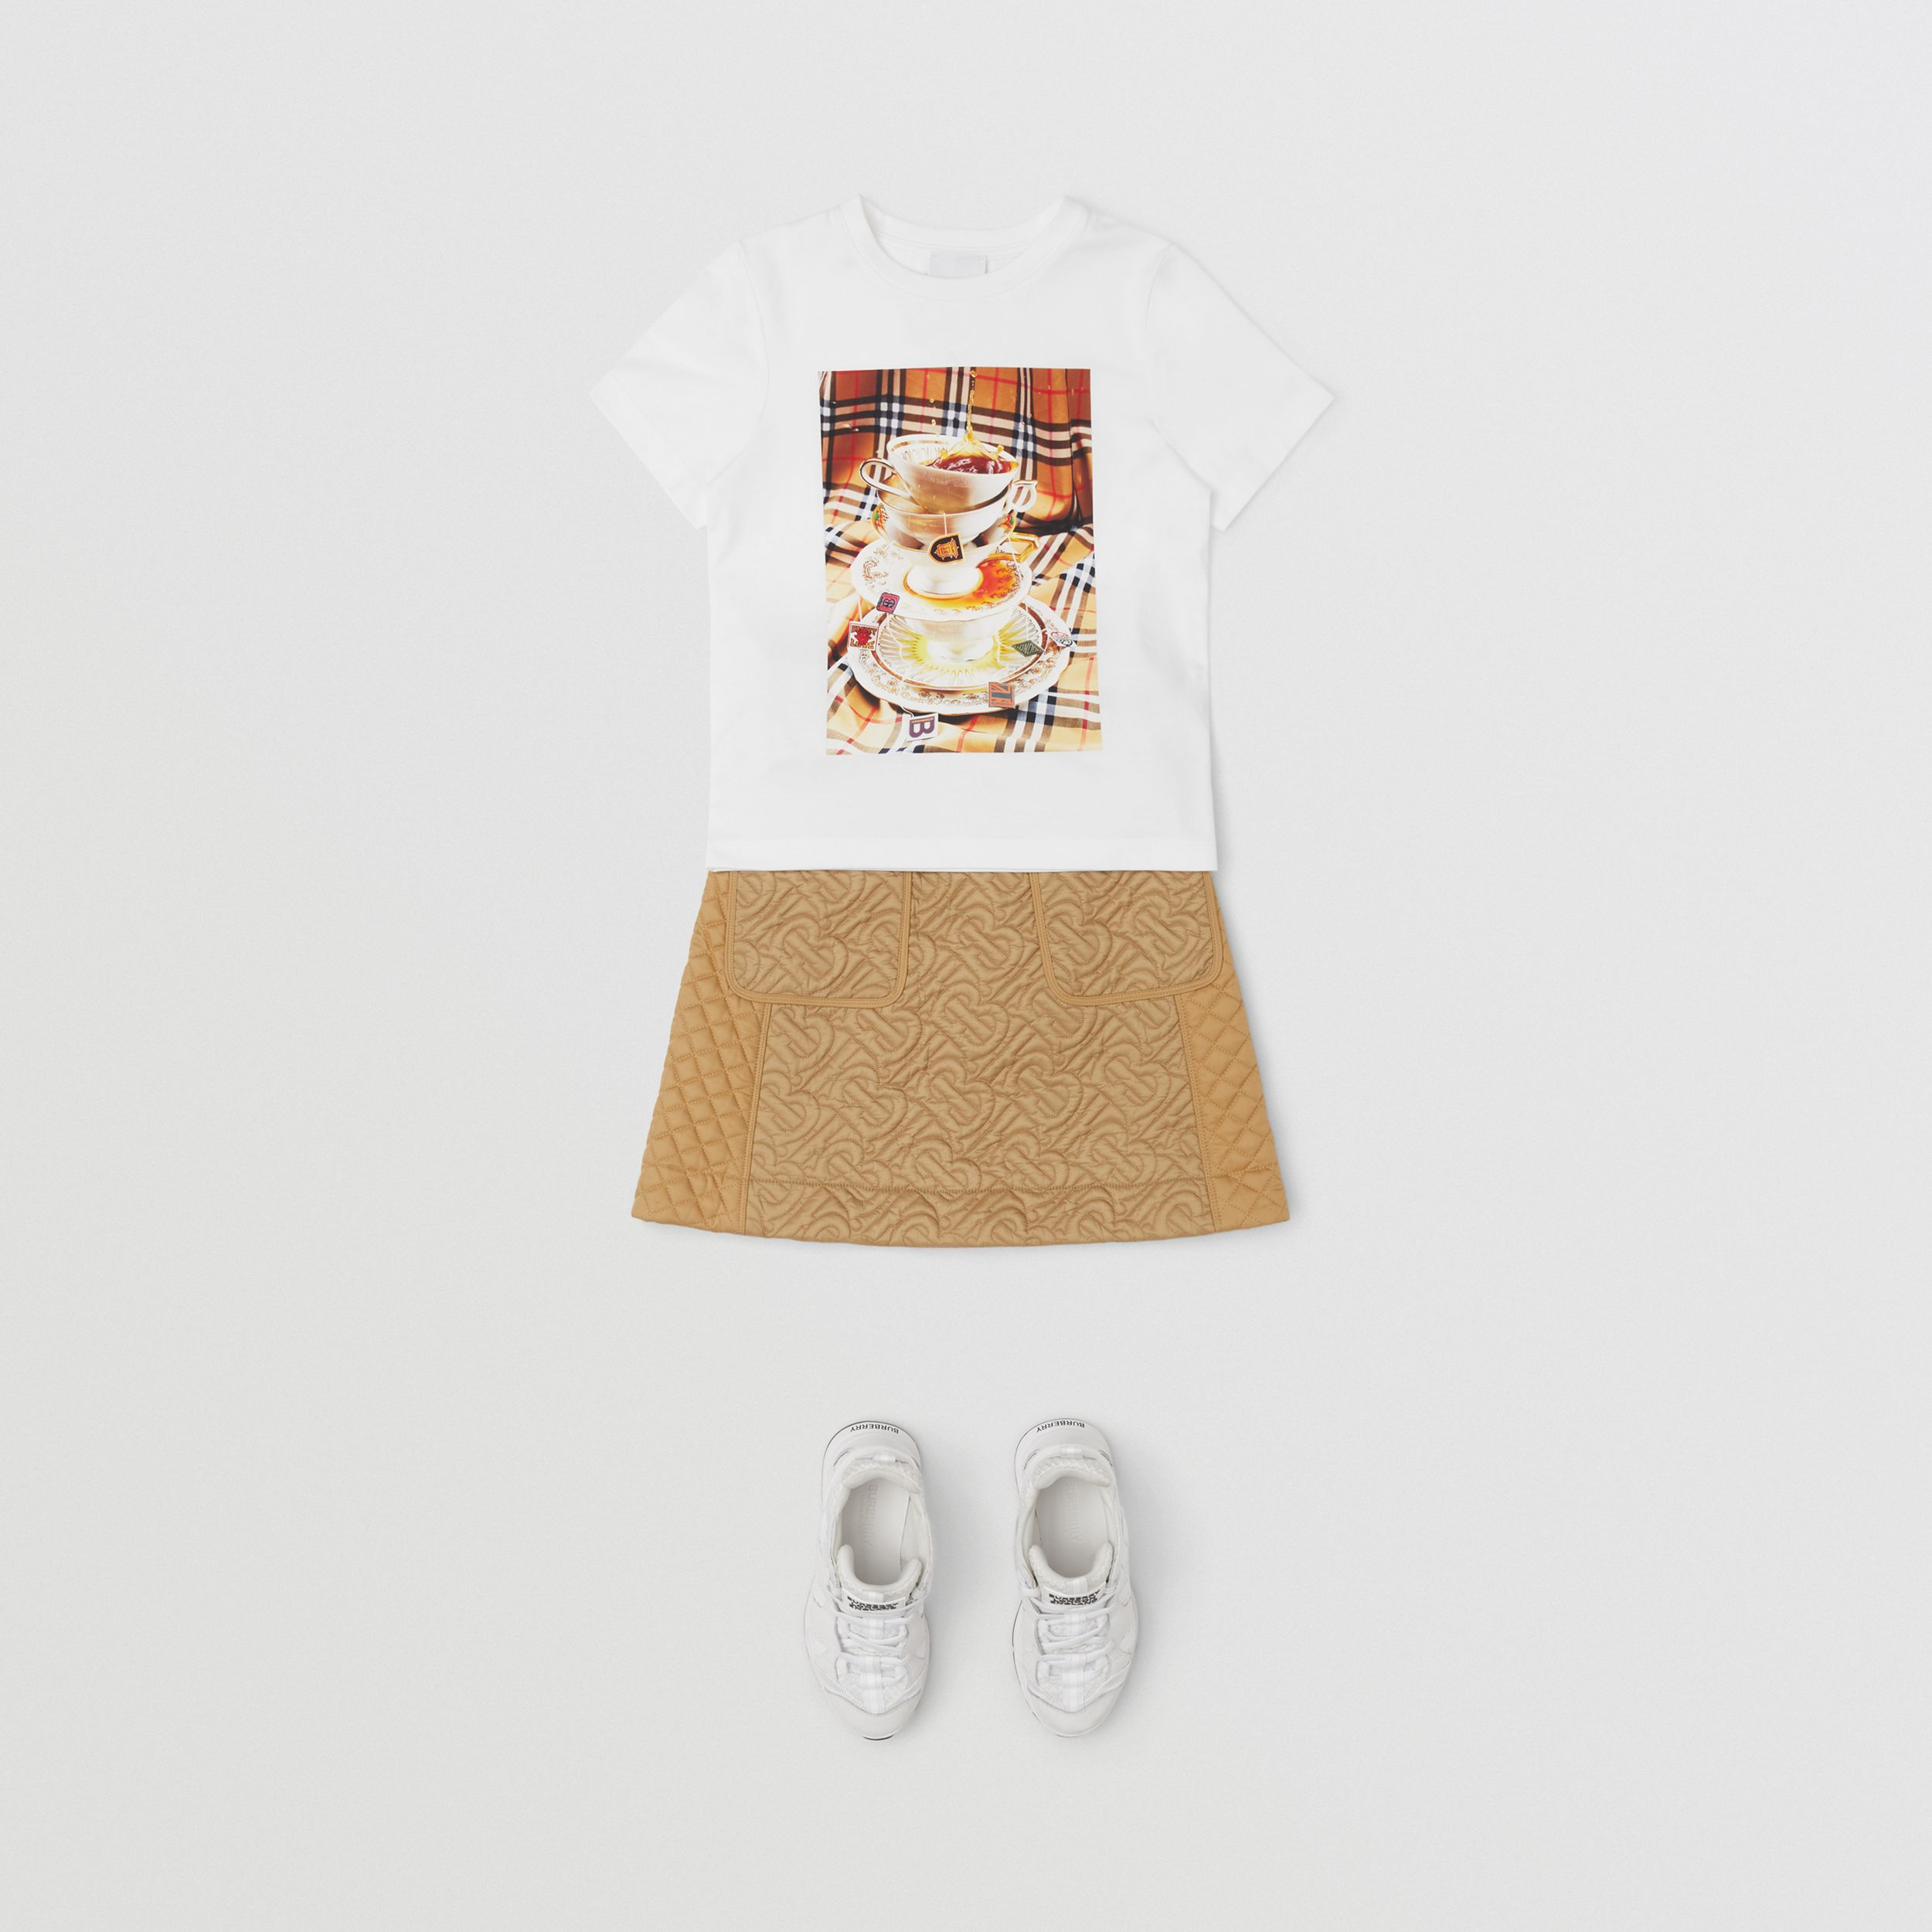 Teacup Print T-shirt in Multicolour | Burberry - 3